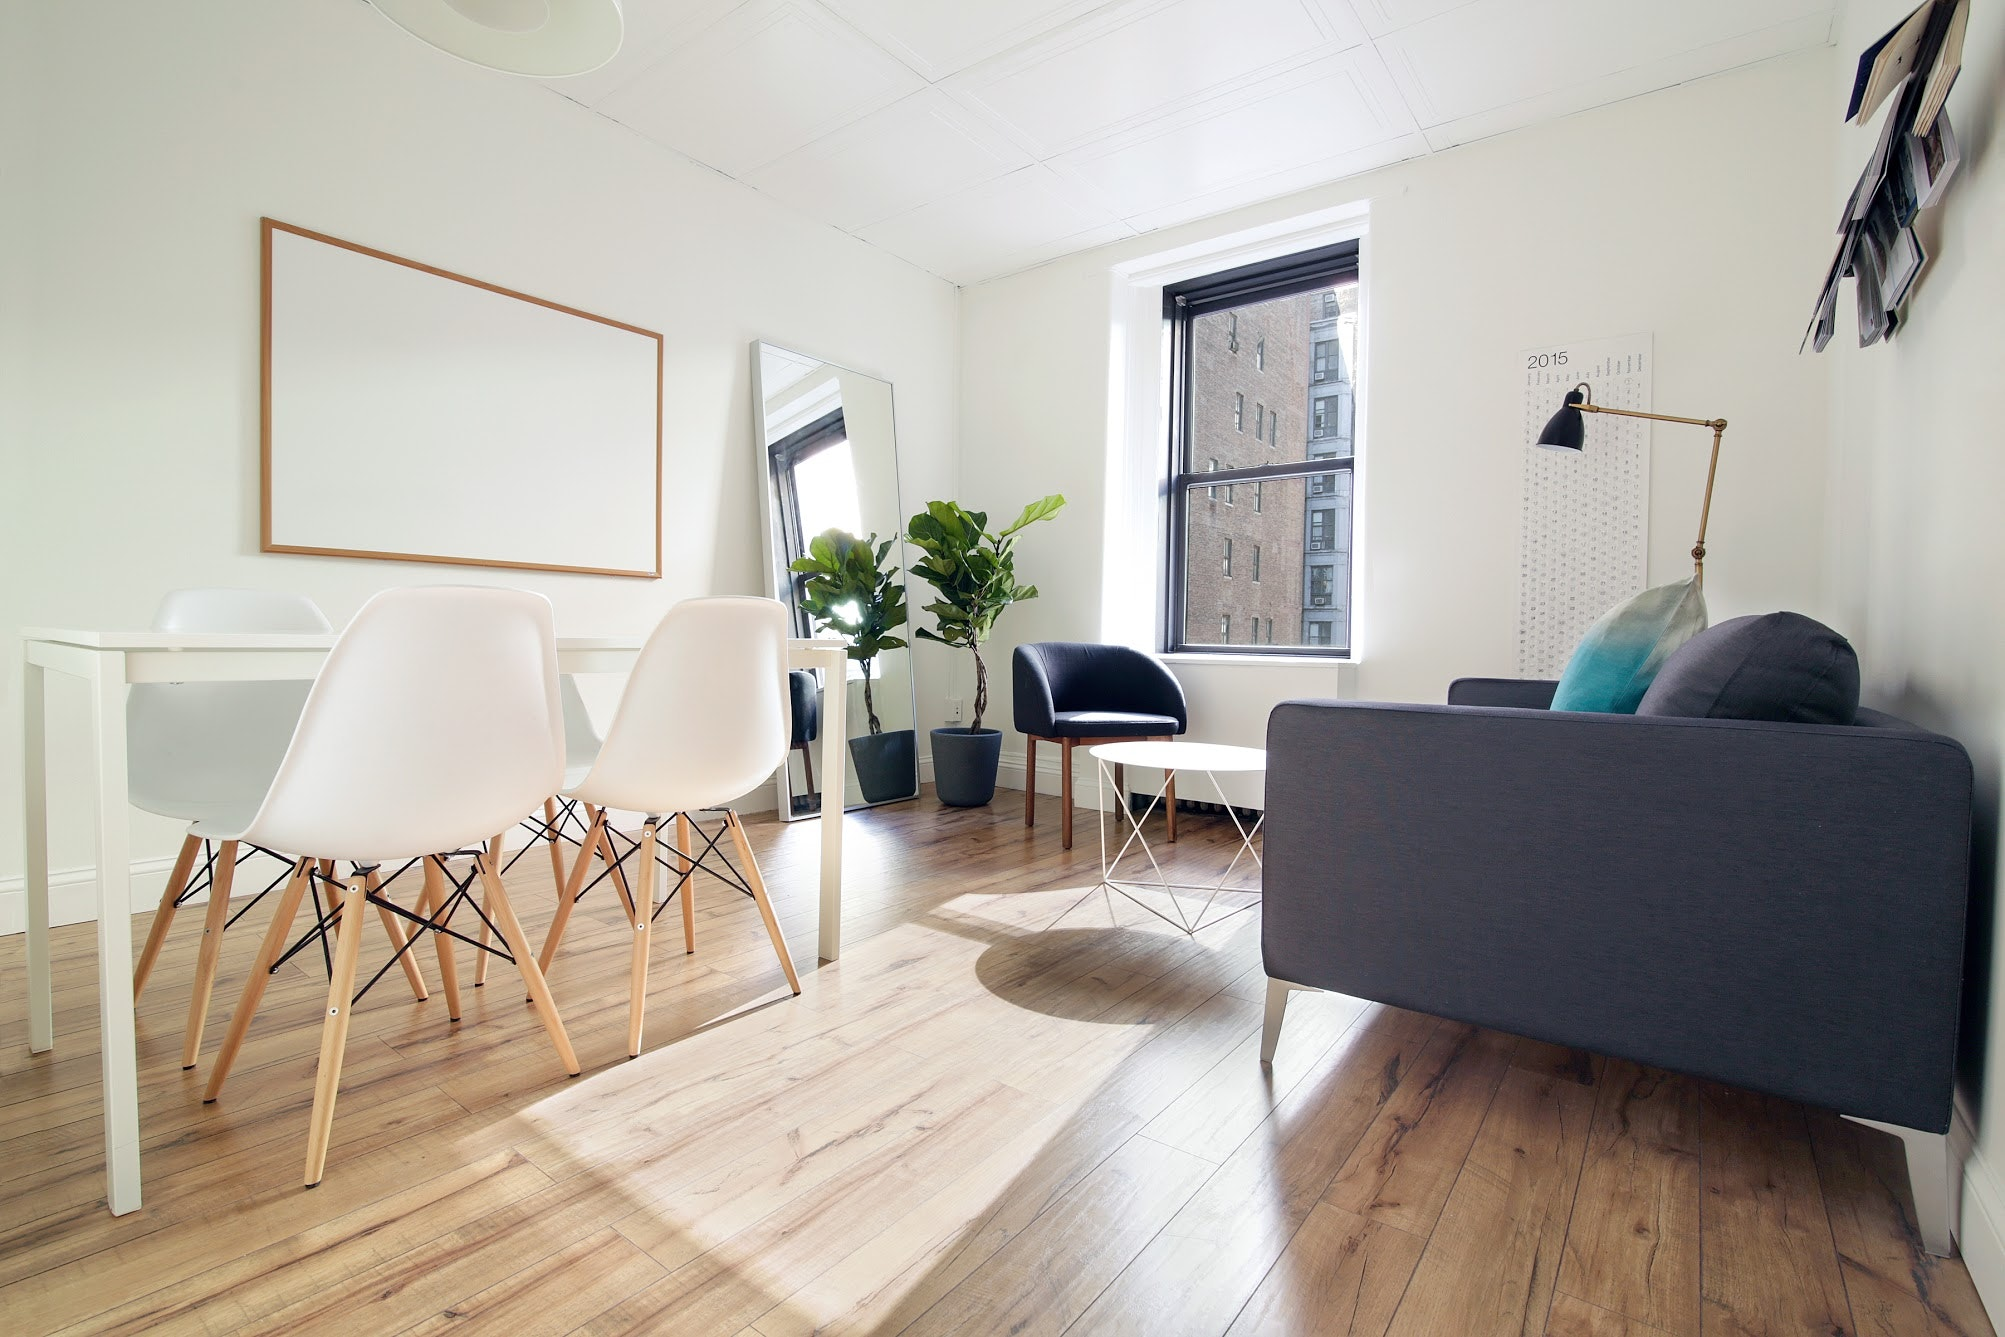 brainstorming space at 276 Fifth Avenue ,New York City